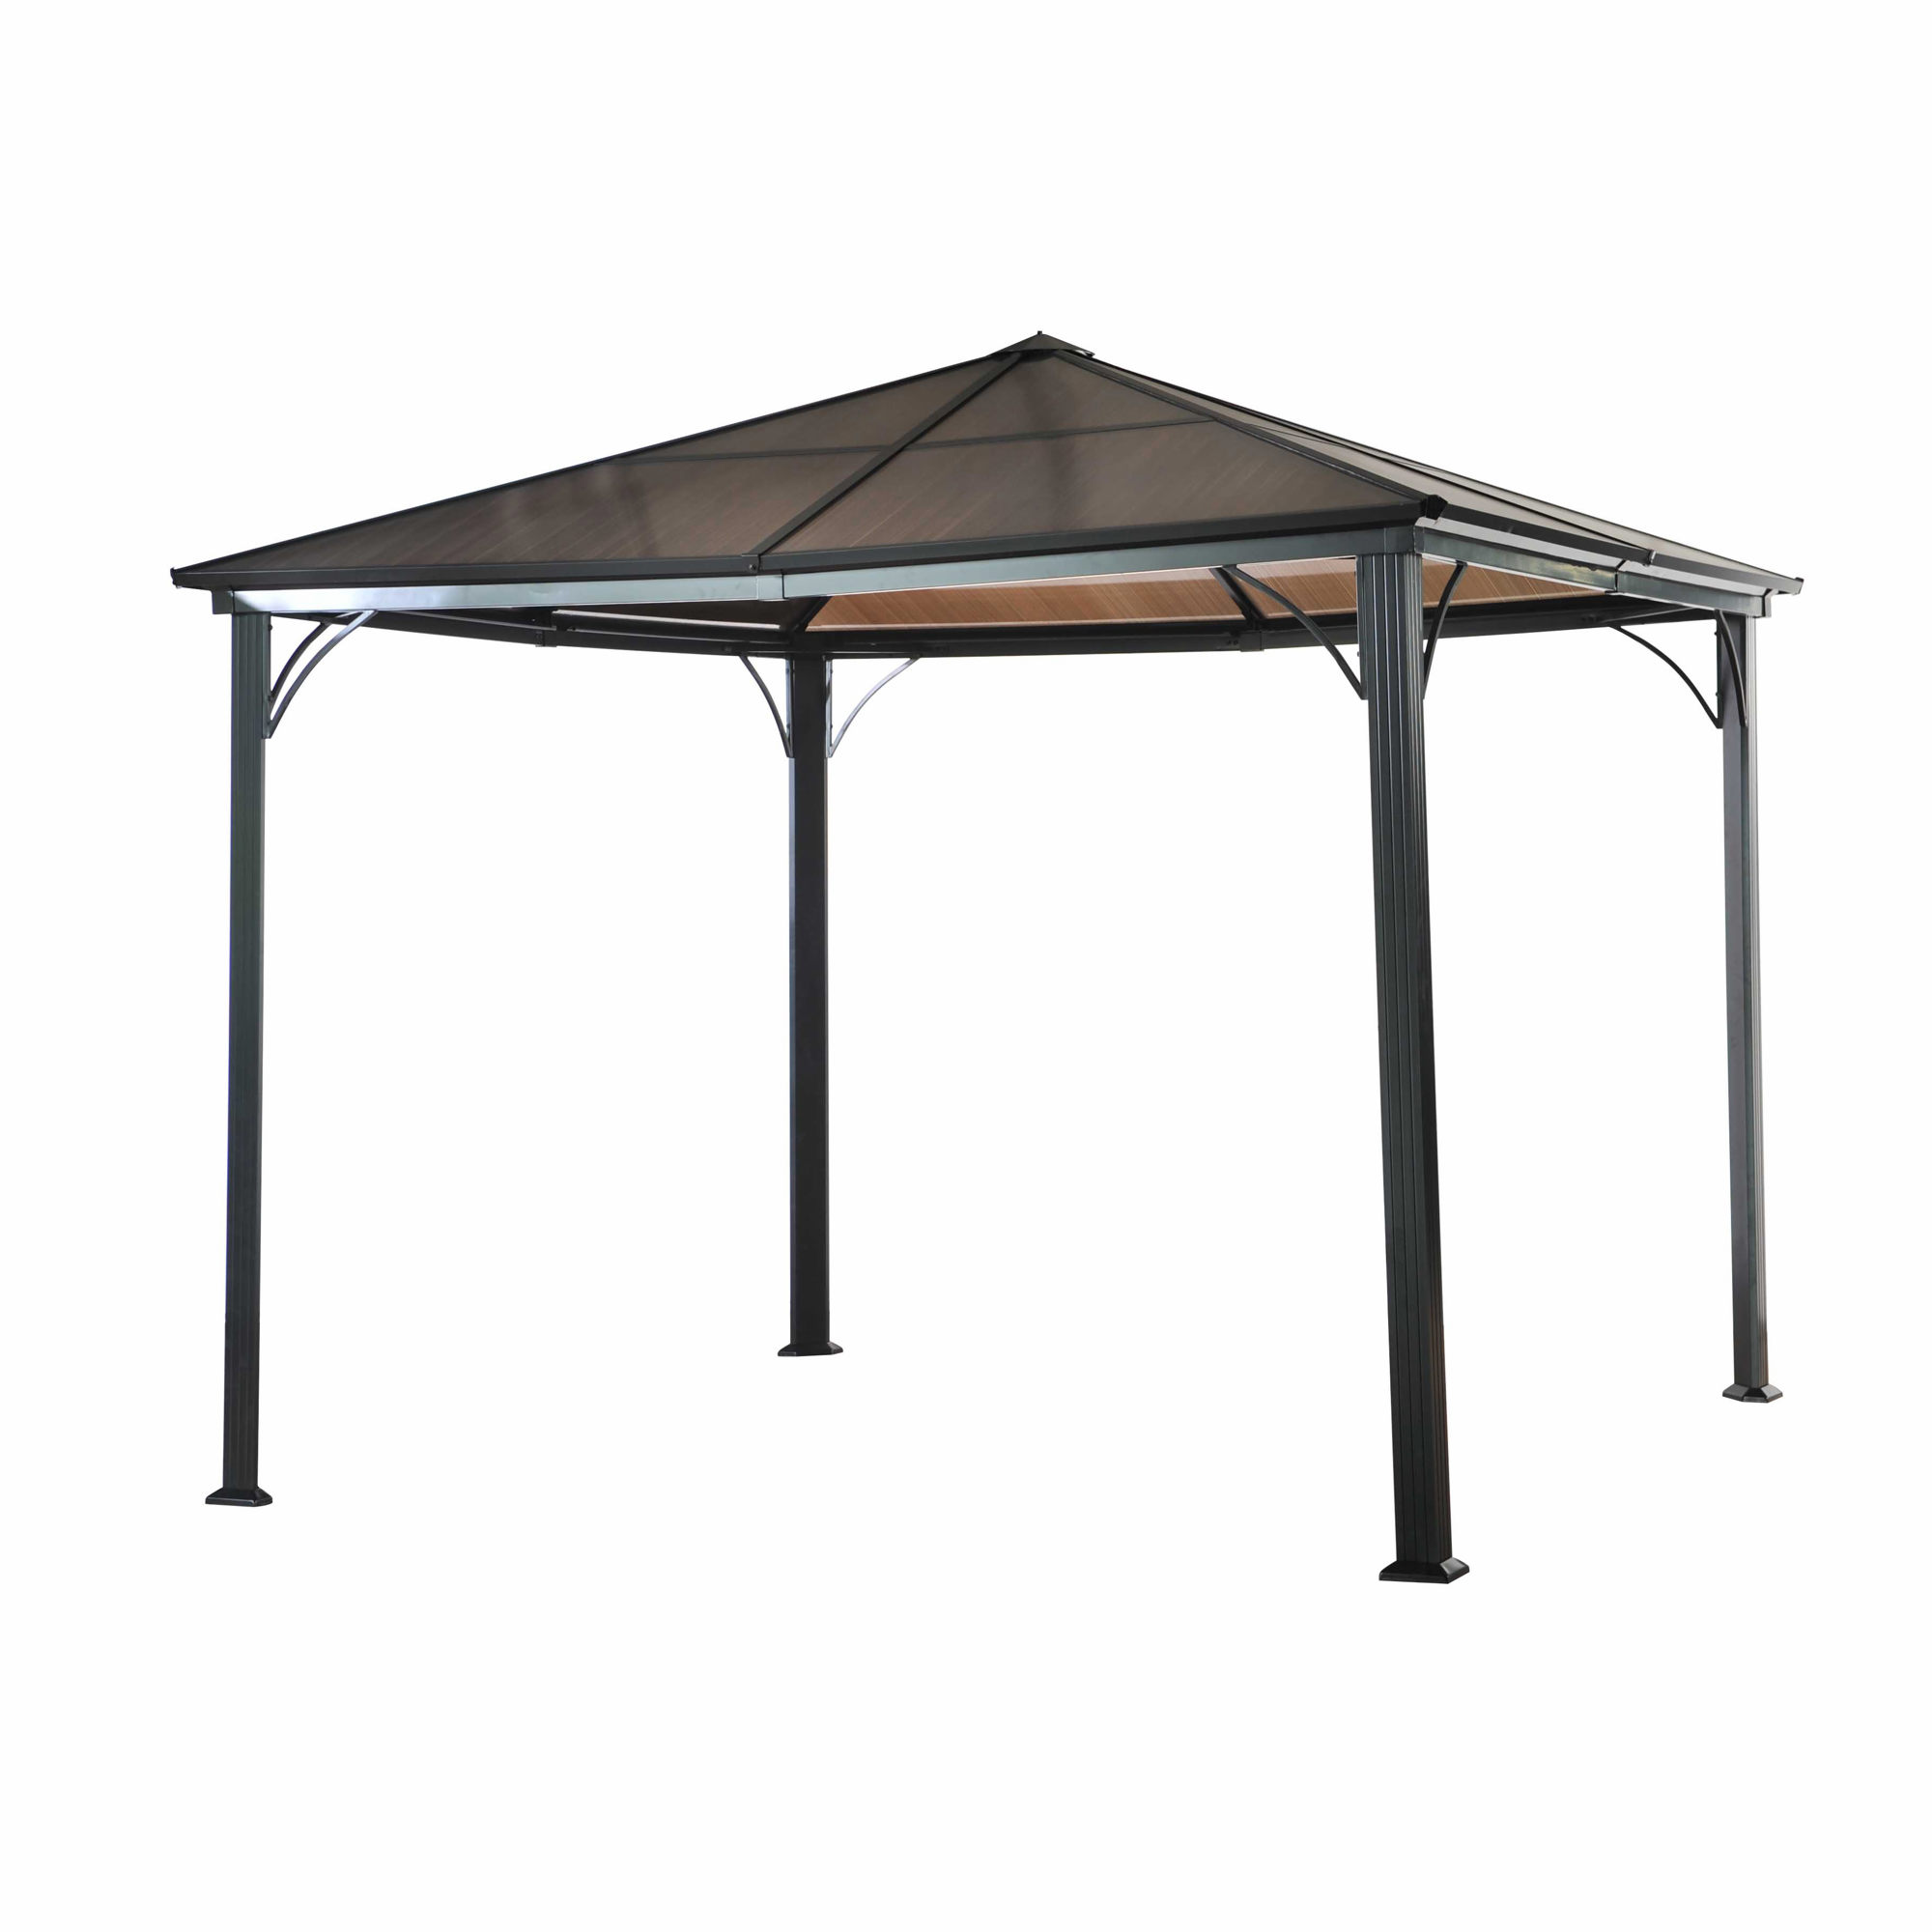 Extraordinary sunjoy gazebo for garden ideas with sunjoy hardtop gazebo and sunjoy grill gazebo